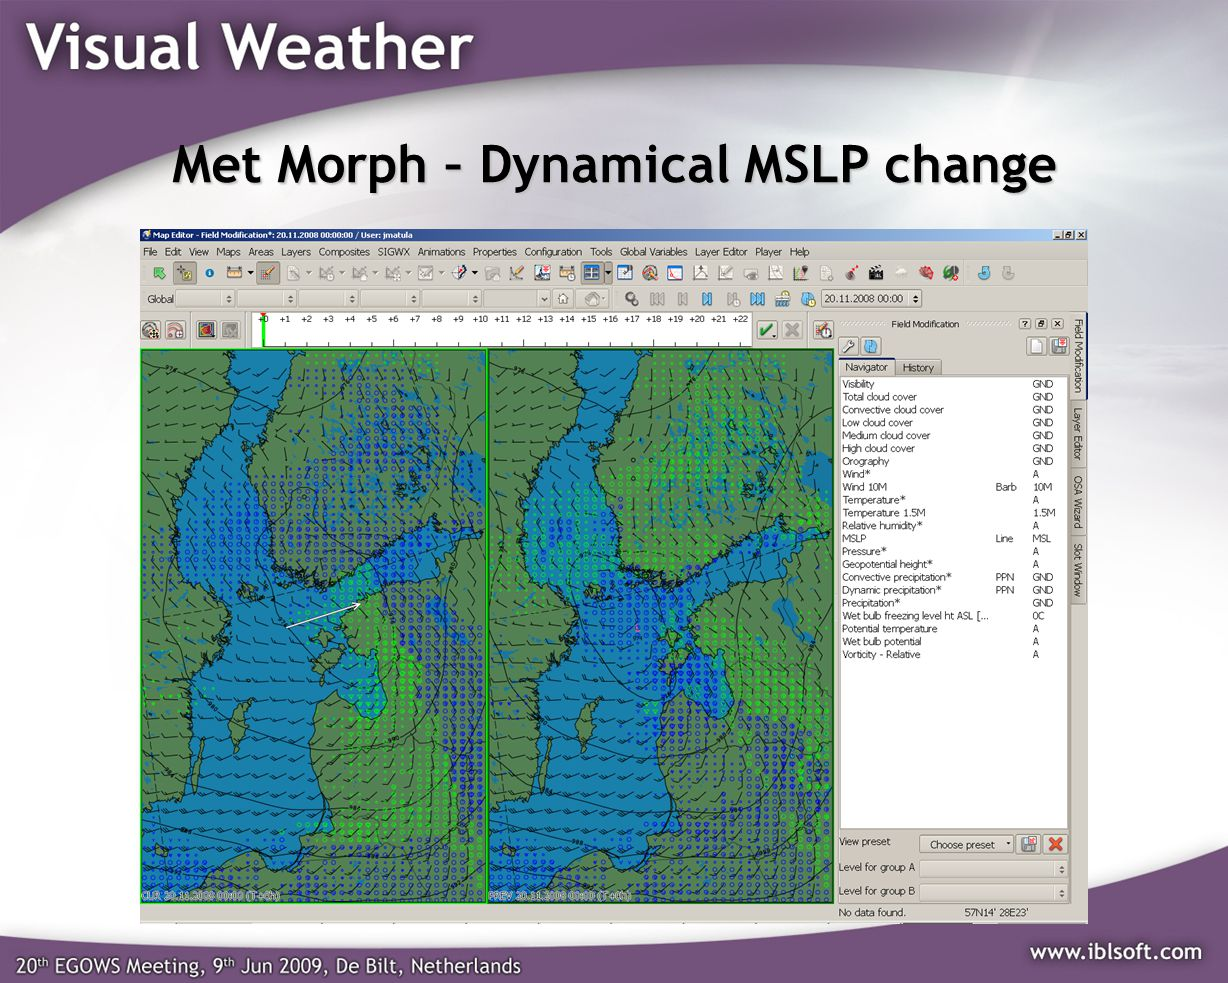 Met Morph – Dynamical MSLP change